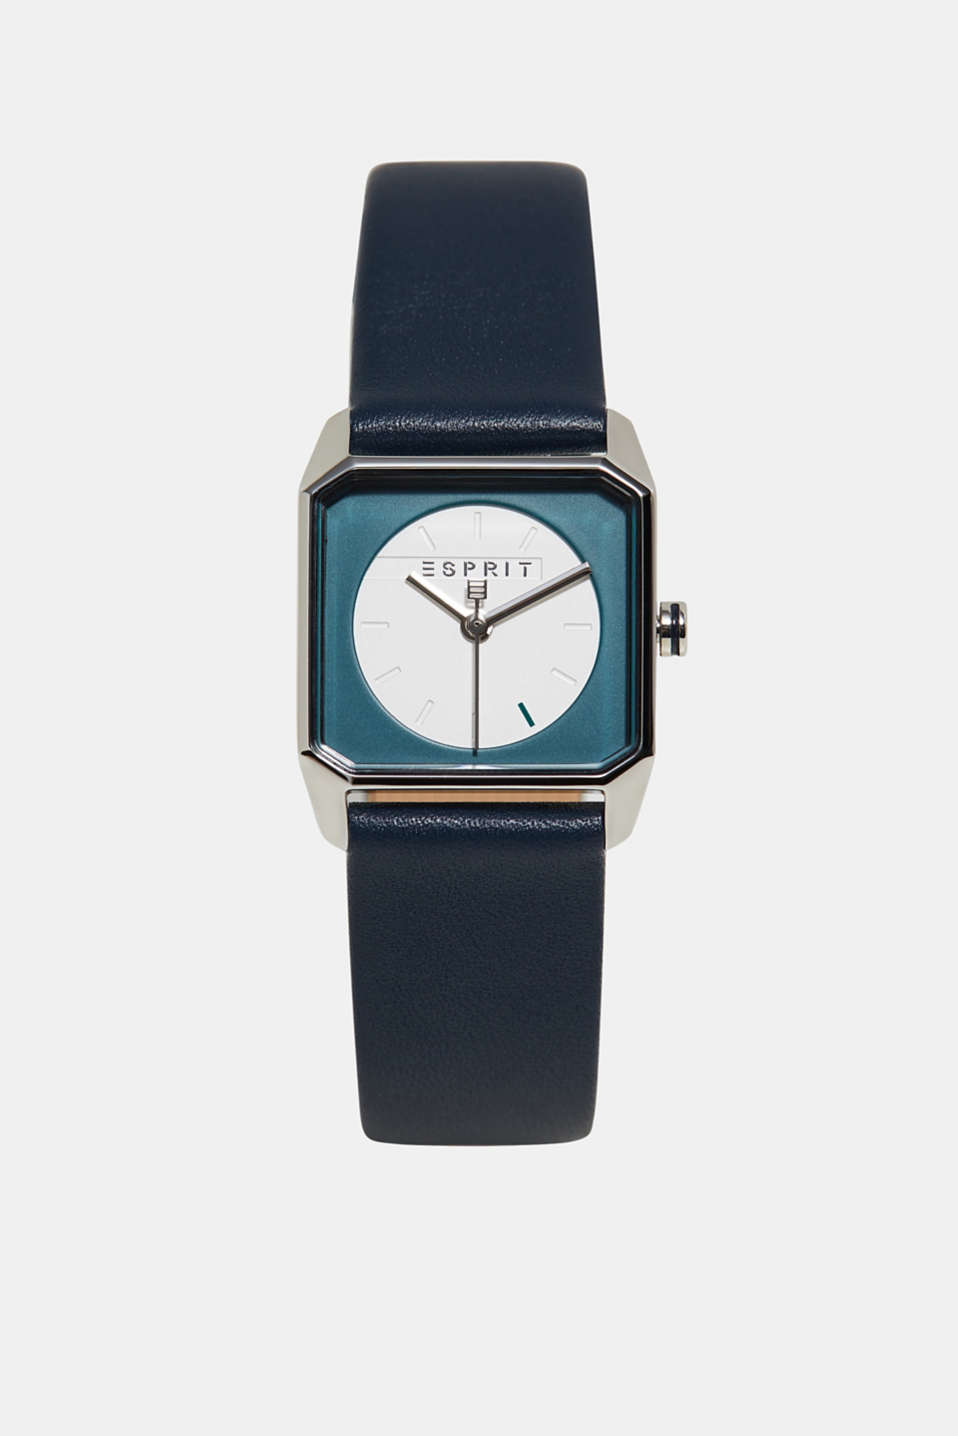 Esprit - Stainless steel watch with a square casing